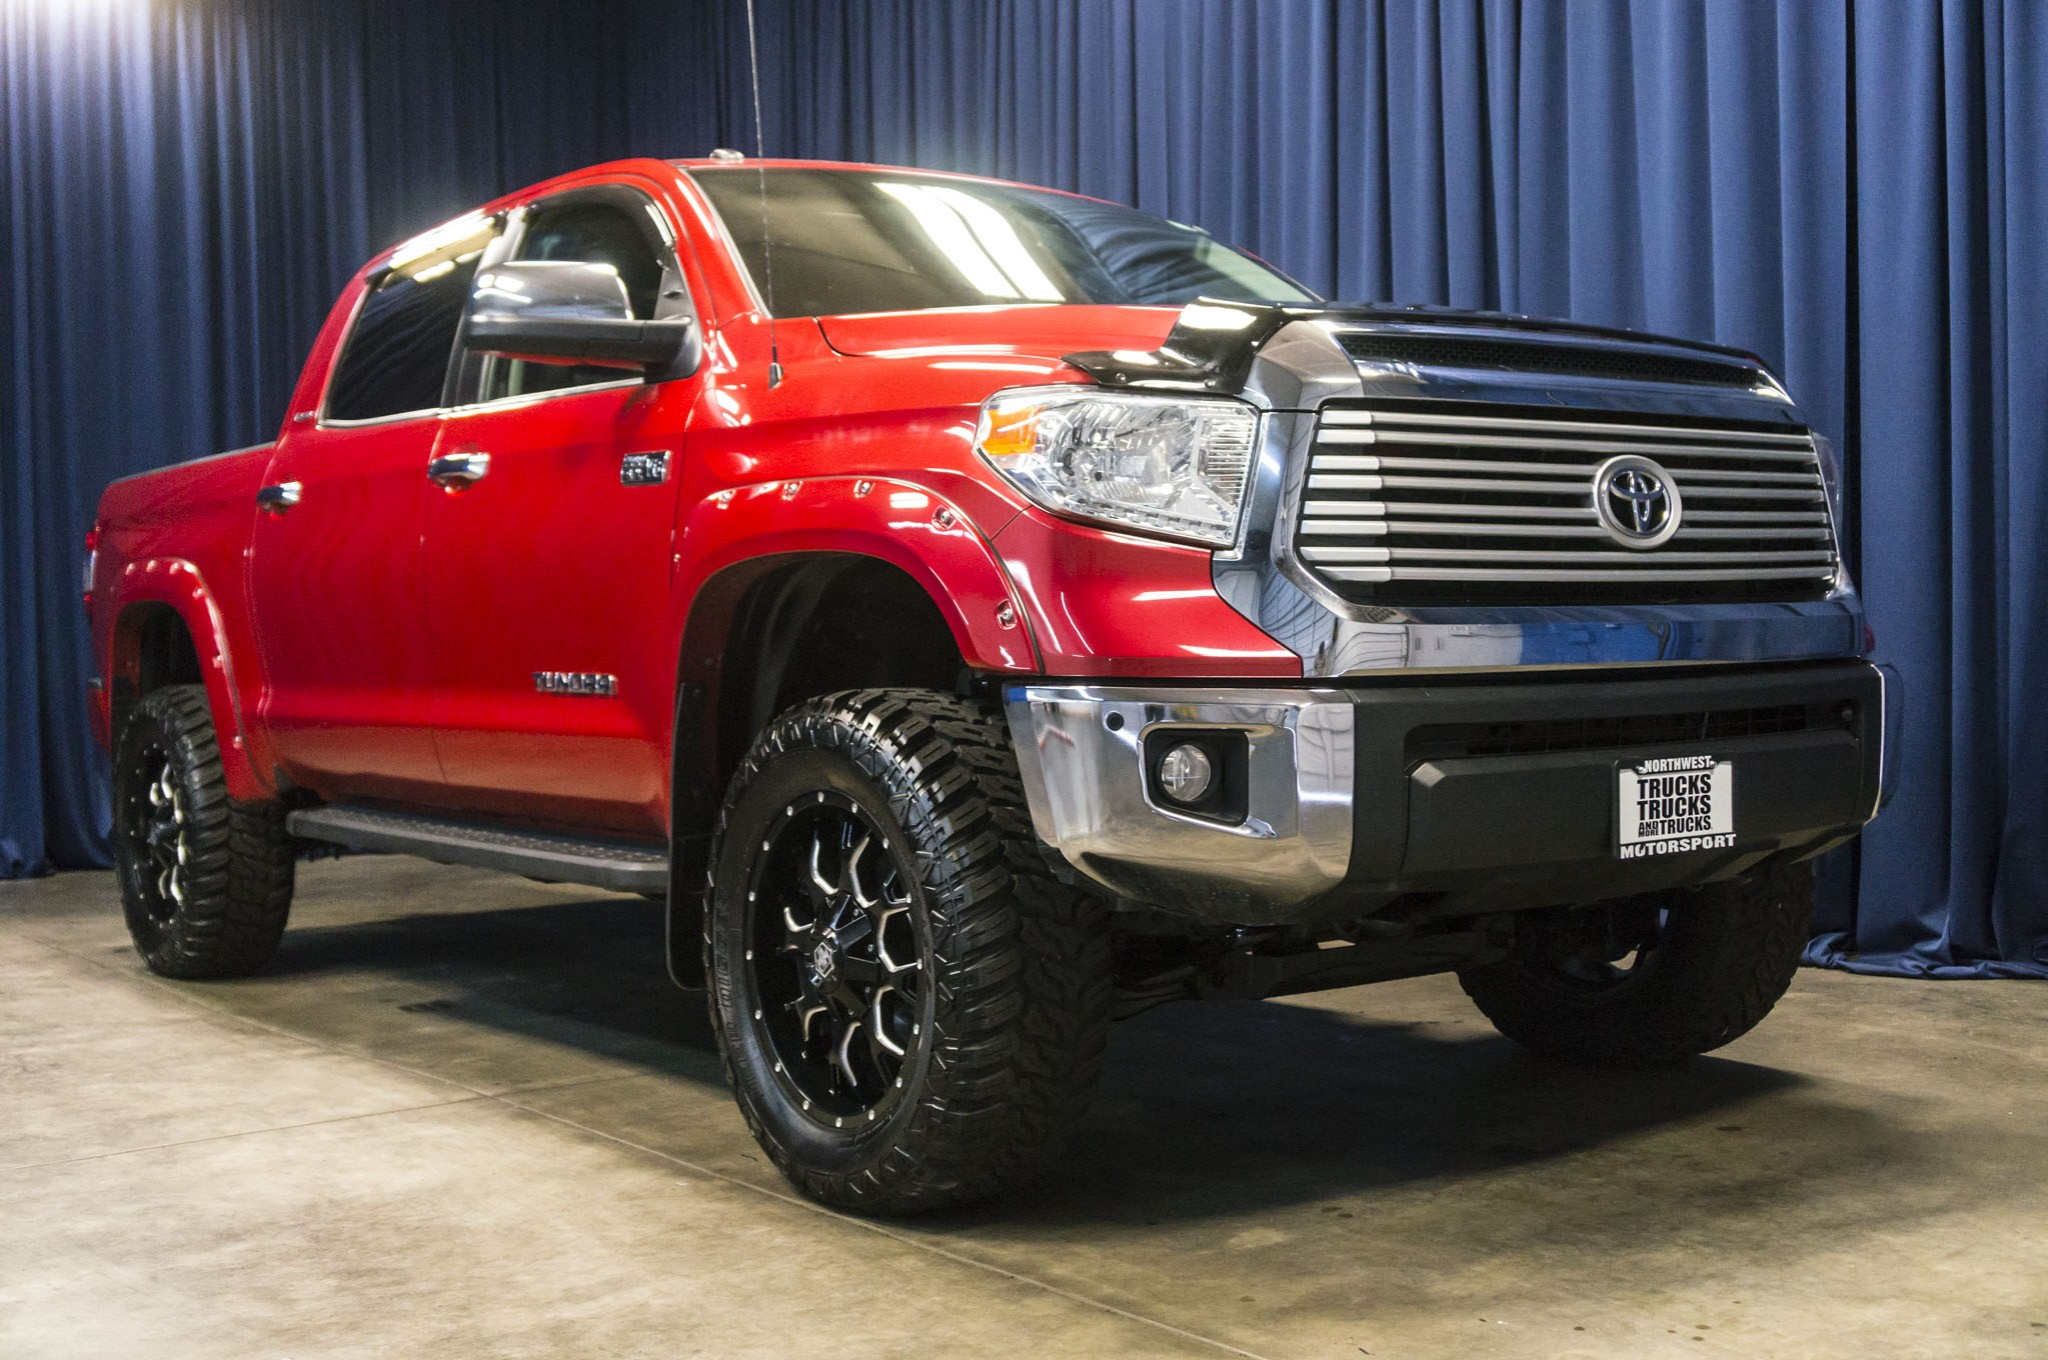 used toyota trucks manual trans 4x4 v8 with positraction